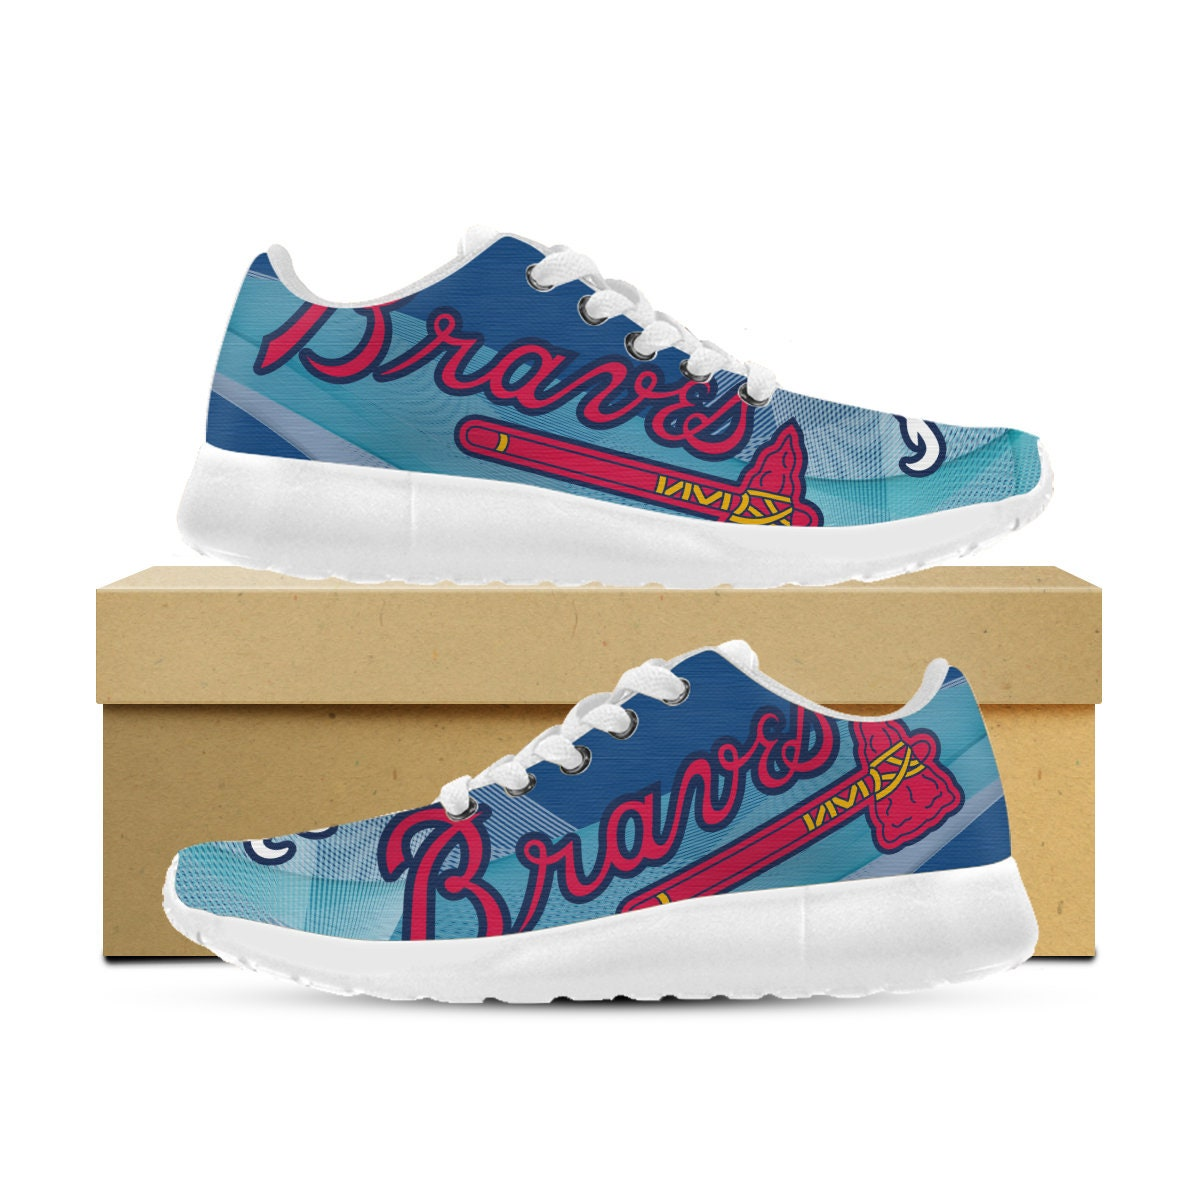 Atlanta Braves Shoes Custom Printed Sneakers Trainers / Runners/ Gym Kids Shoes Womens Mens and Kids Gym 8f8847